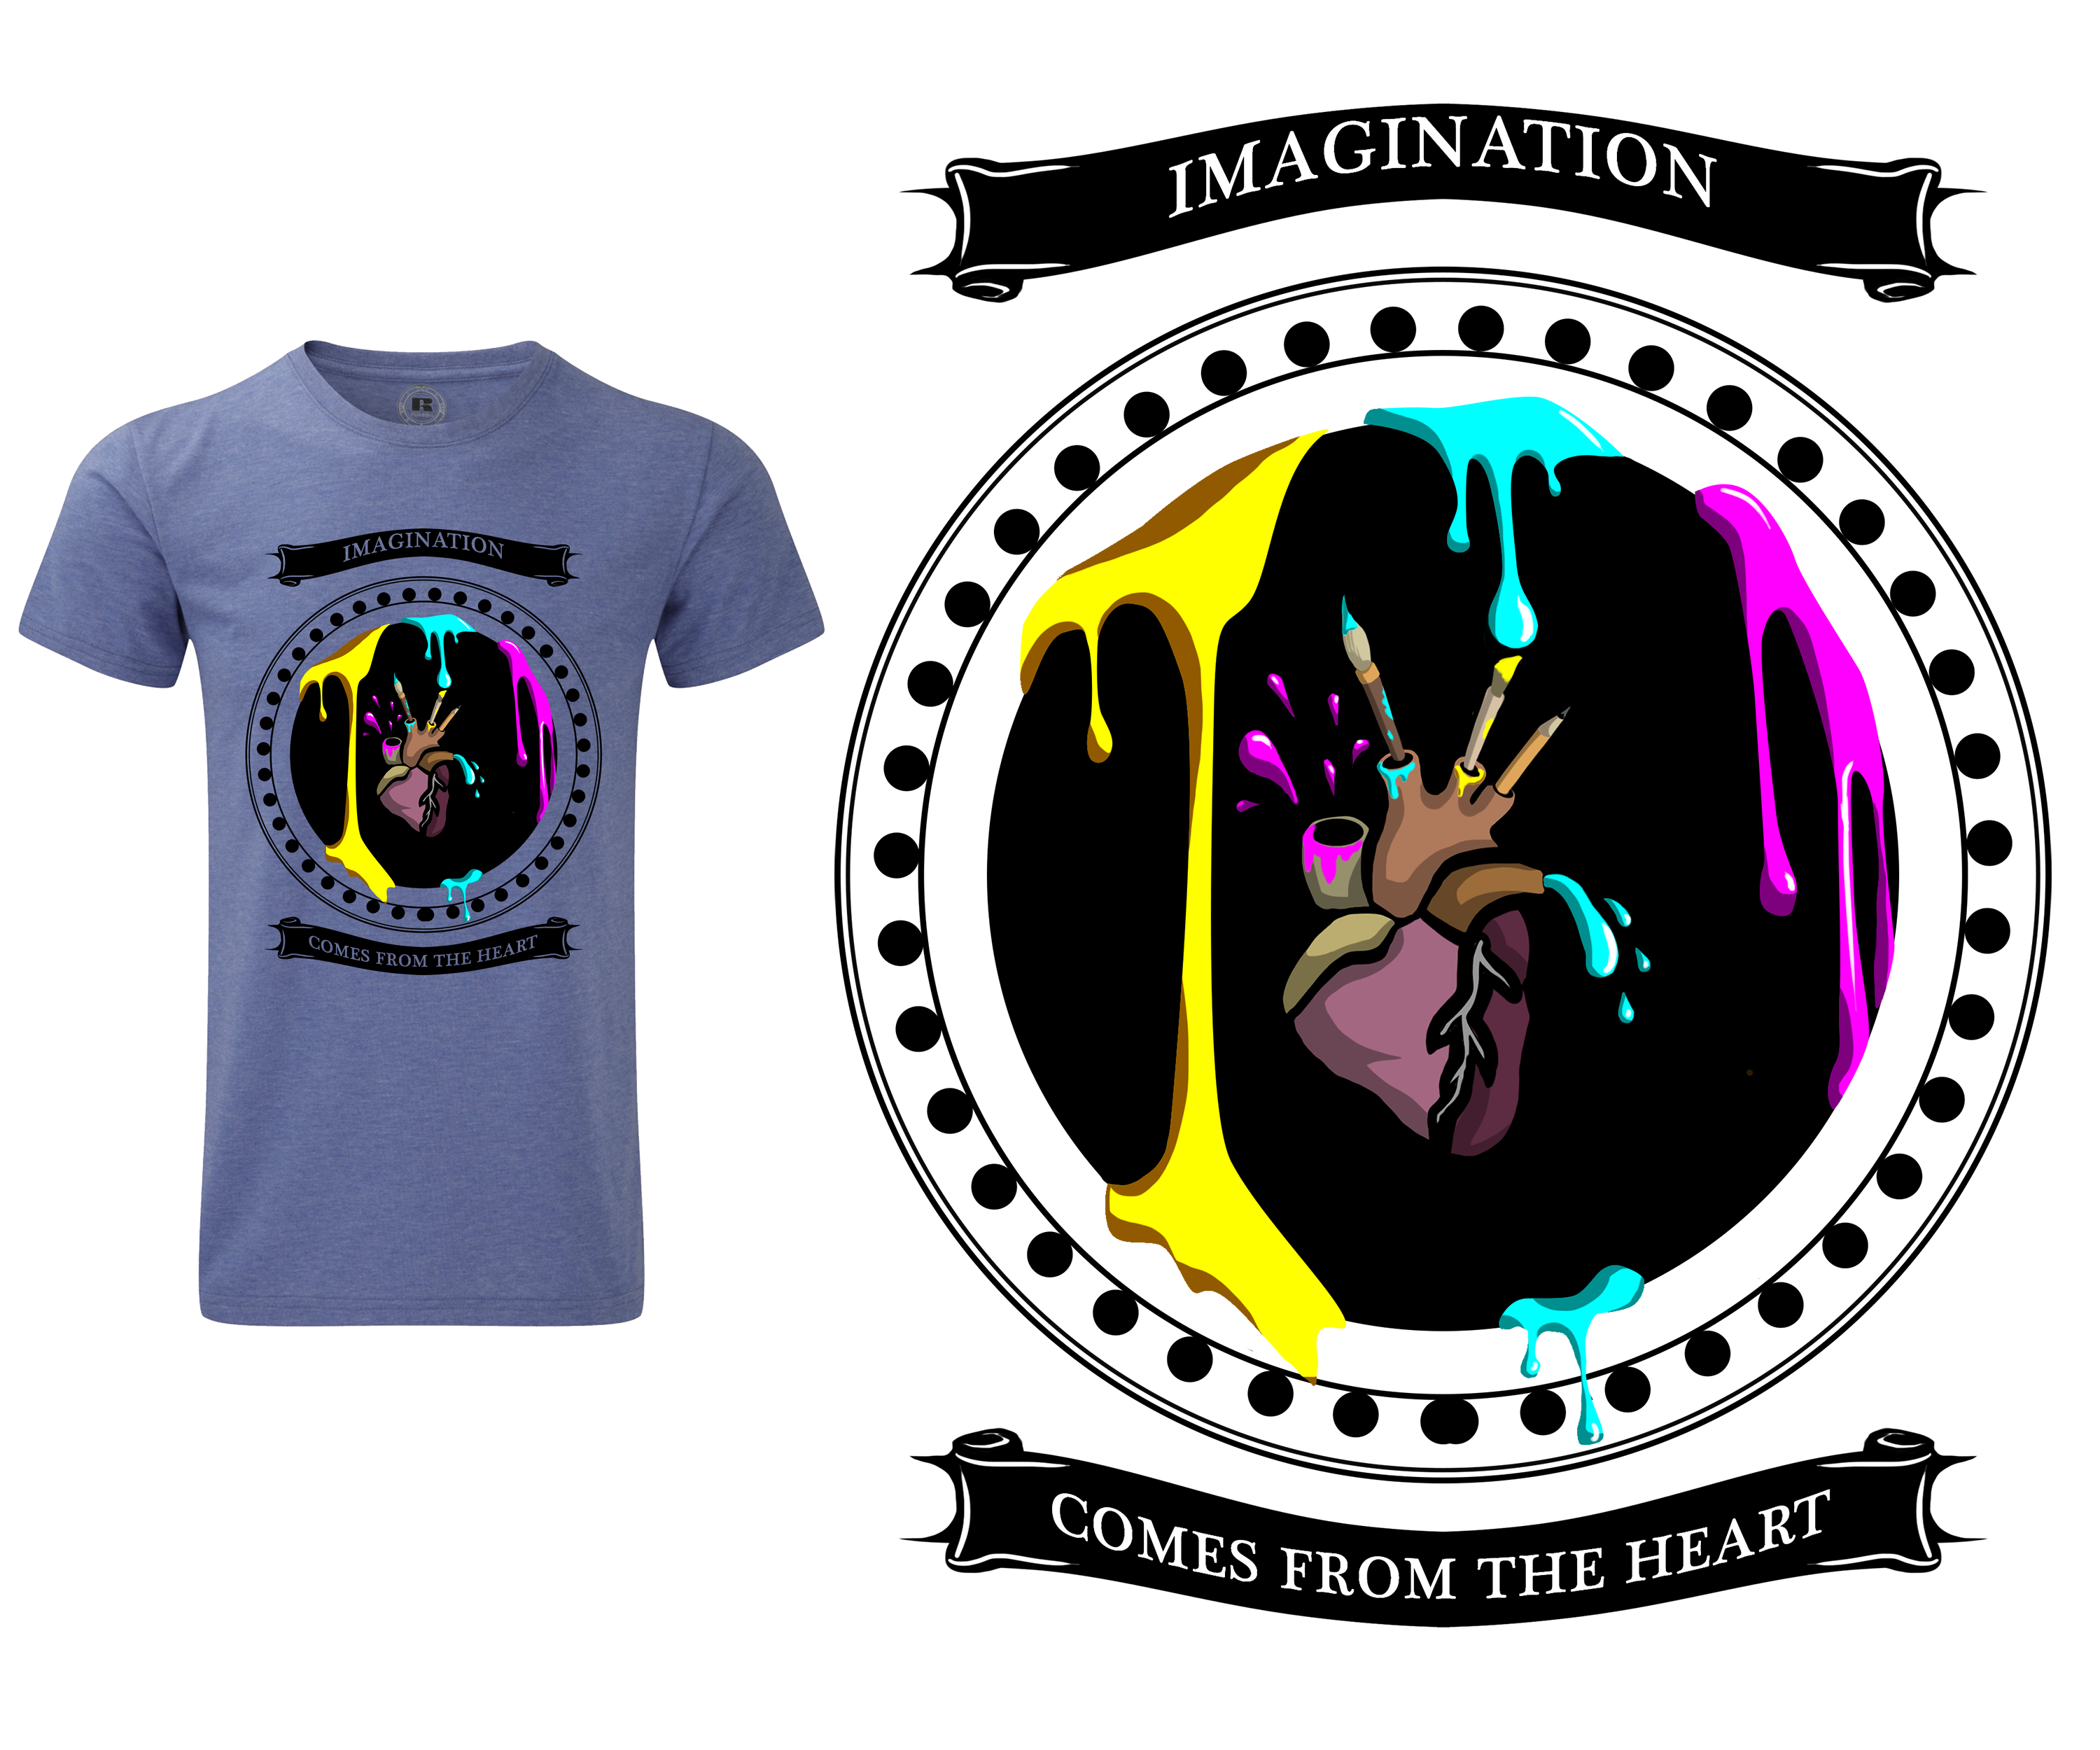 Imagination comes from the heart